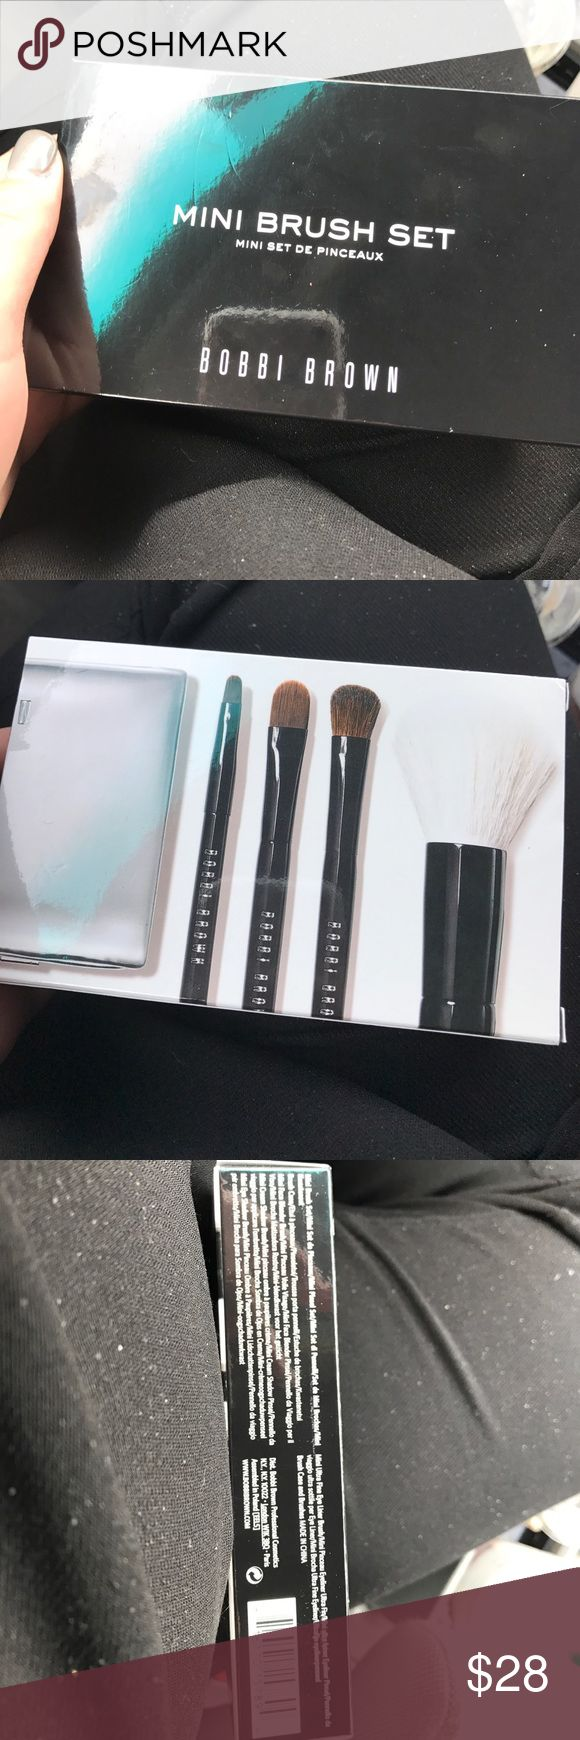 Bobbi Brown Mini Brush Set Never opened new and comes with bag to hold brushes.. feel free to make an offer Sephora Makeup Brushes & Tools